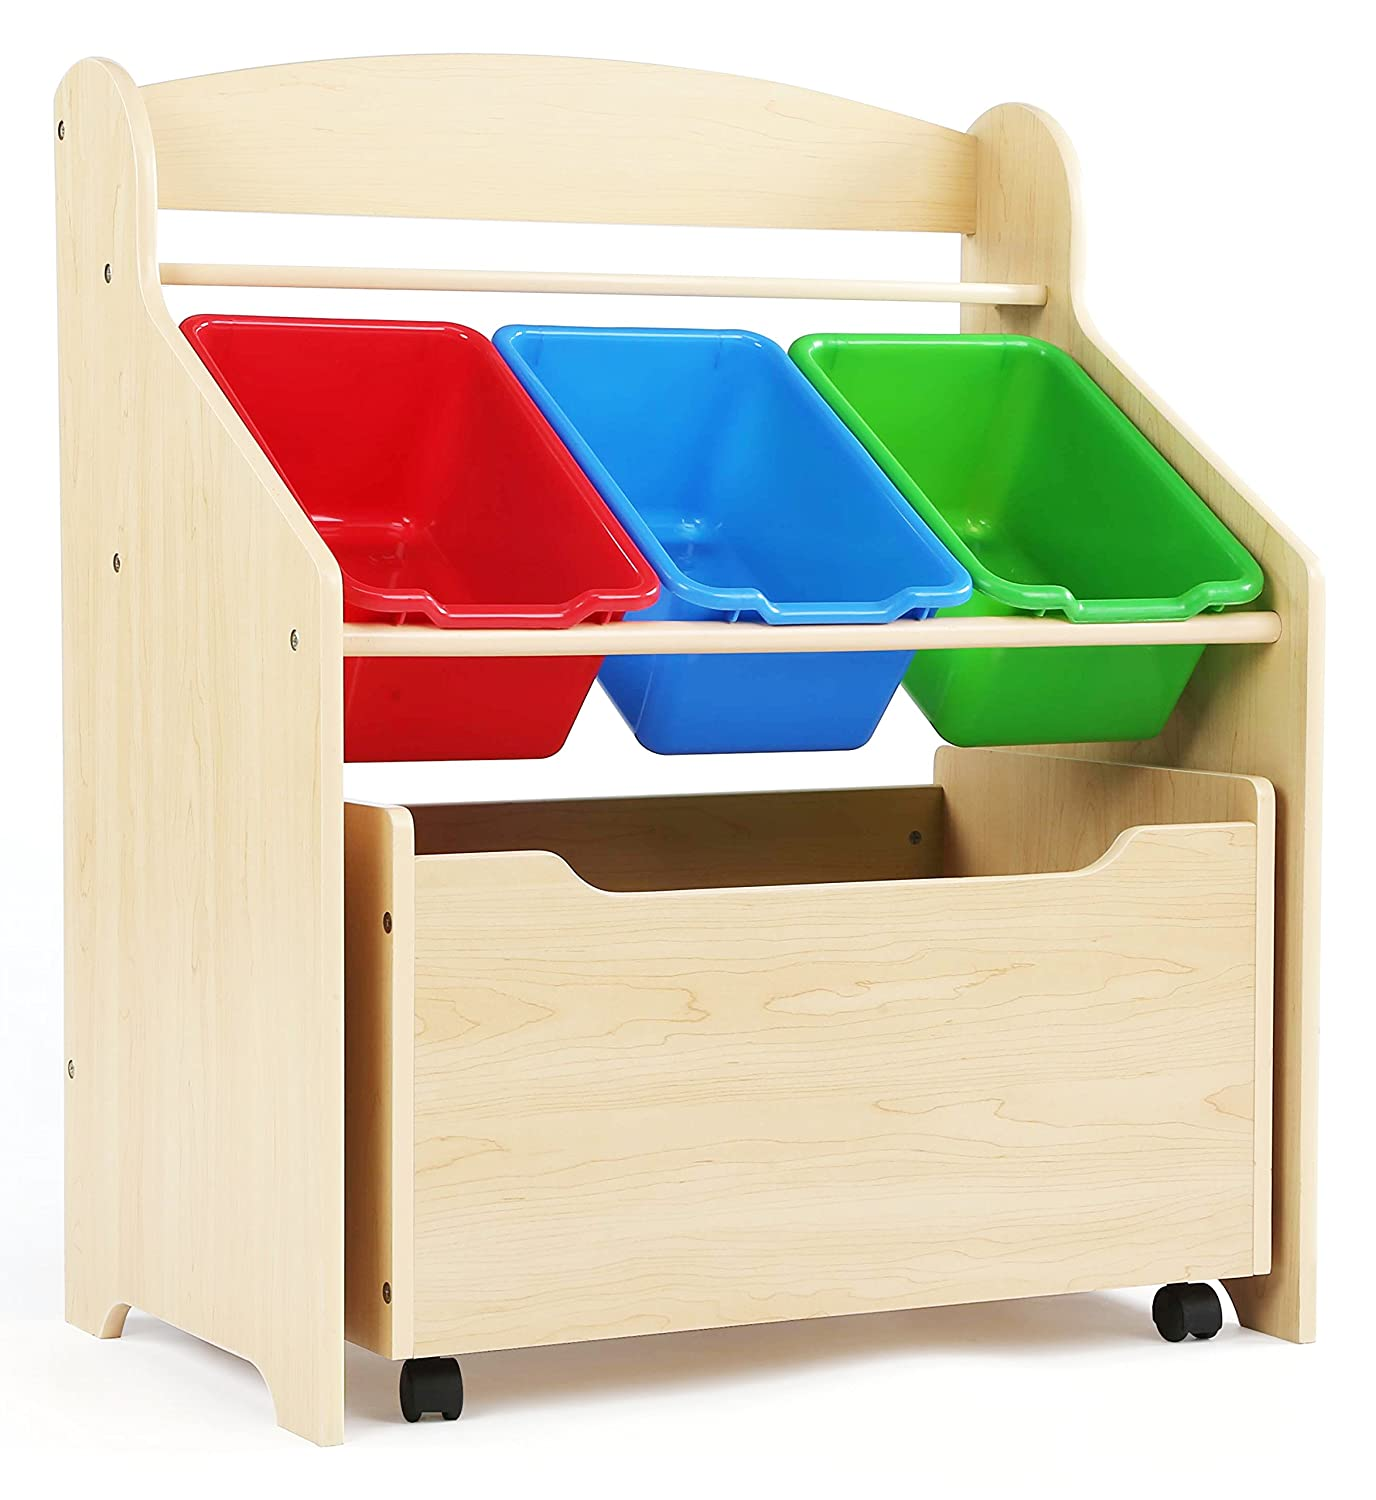 Kids Toy Storage Organizer Bedroom Bucket Wood Furniture